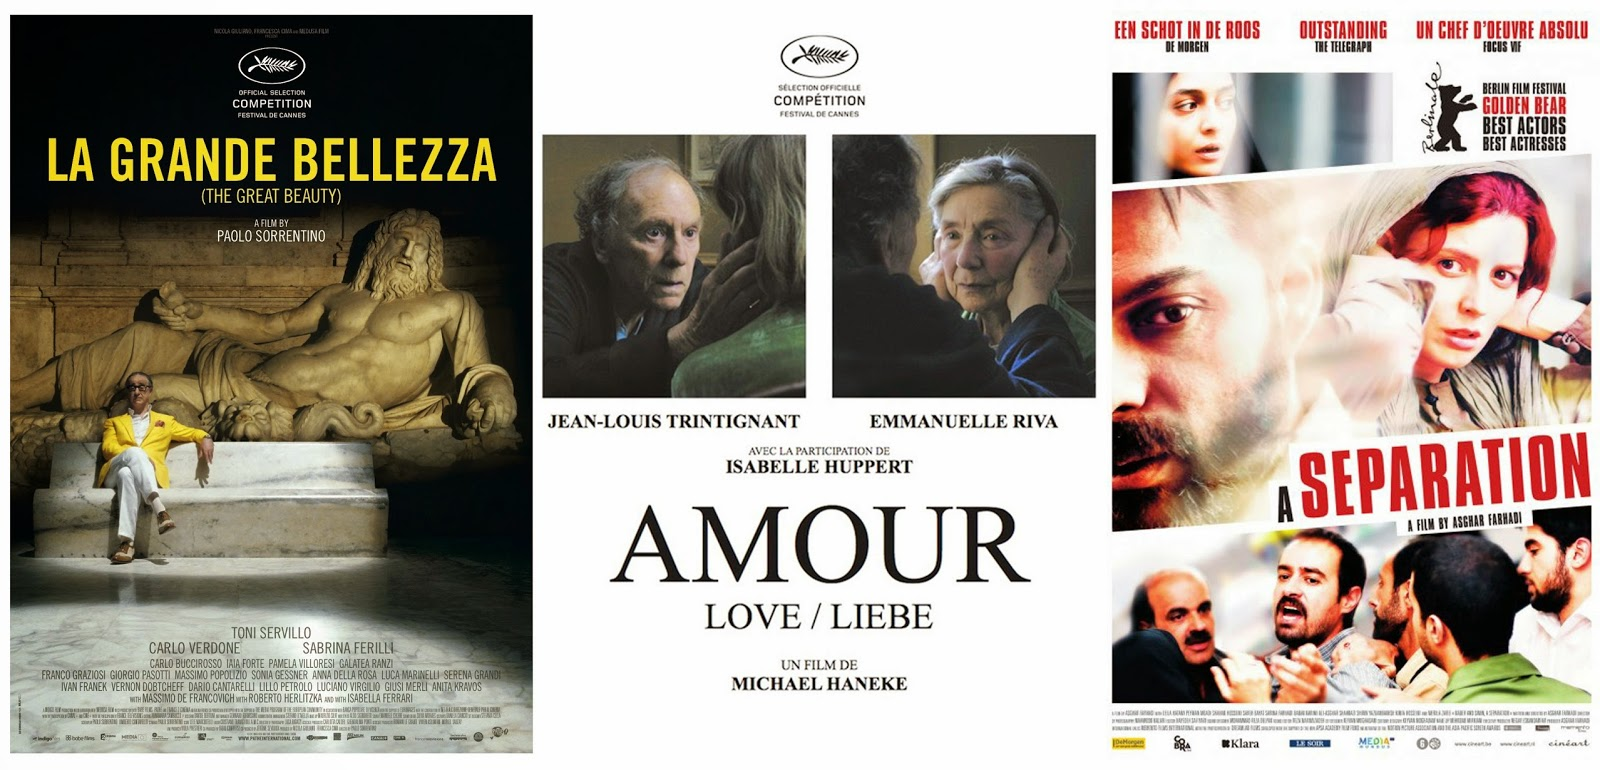 The 25 Best Foreign Language Movies of All Time - IMDb